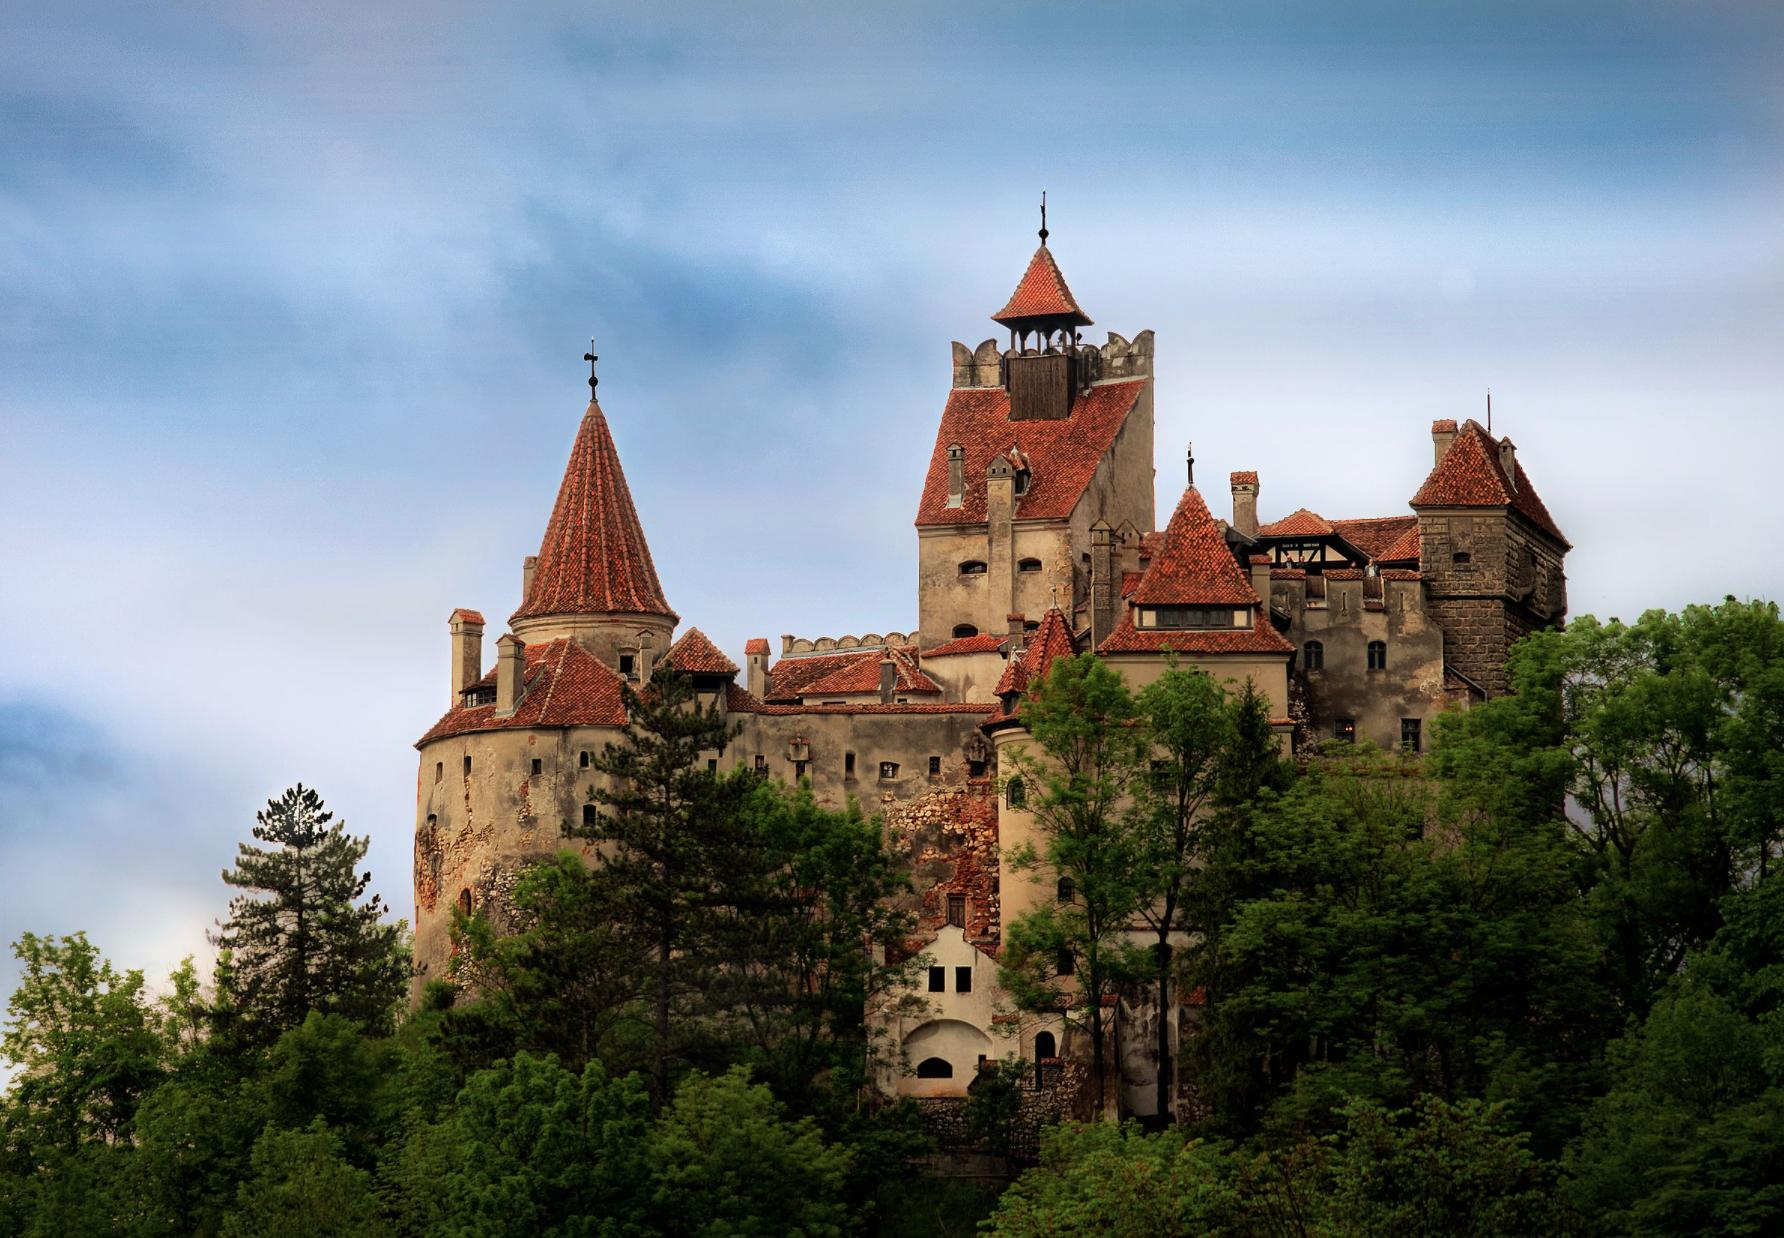 Willing Victims Flock to Count Dracula's Castle to Get Their Experimental COVID-19 Vaccine